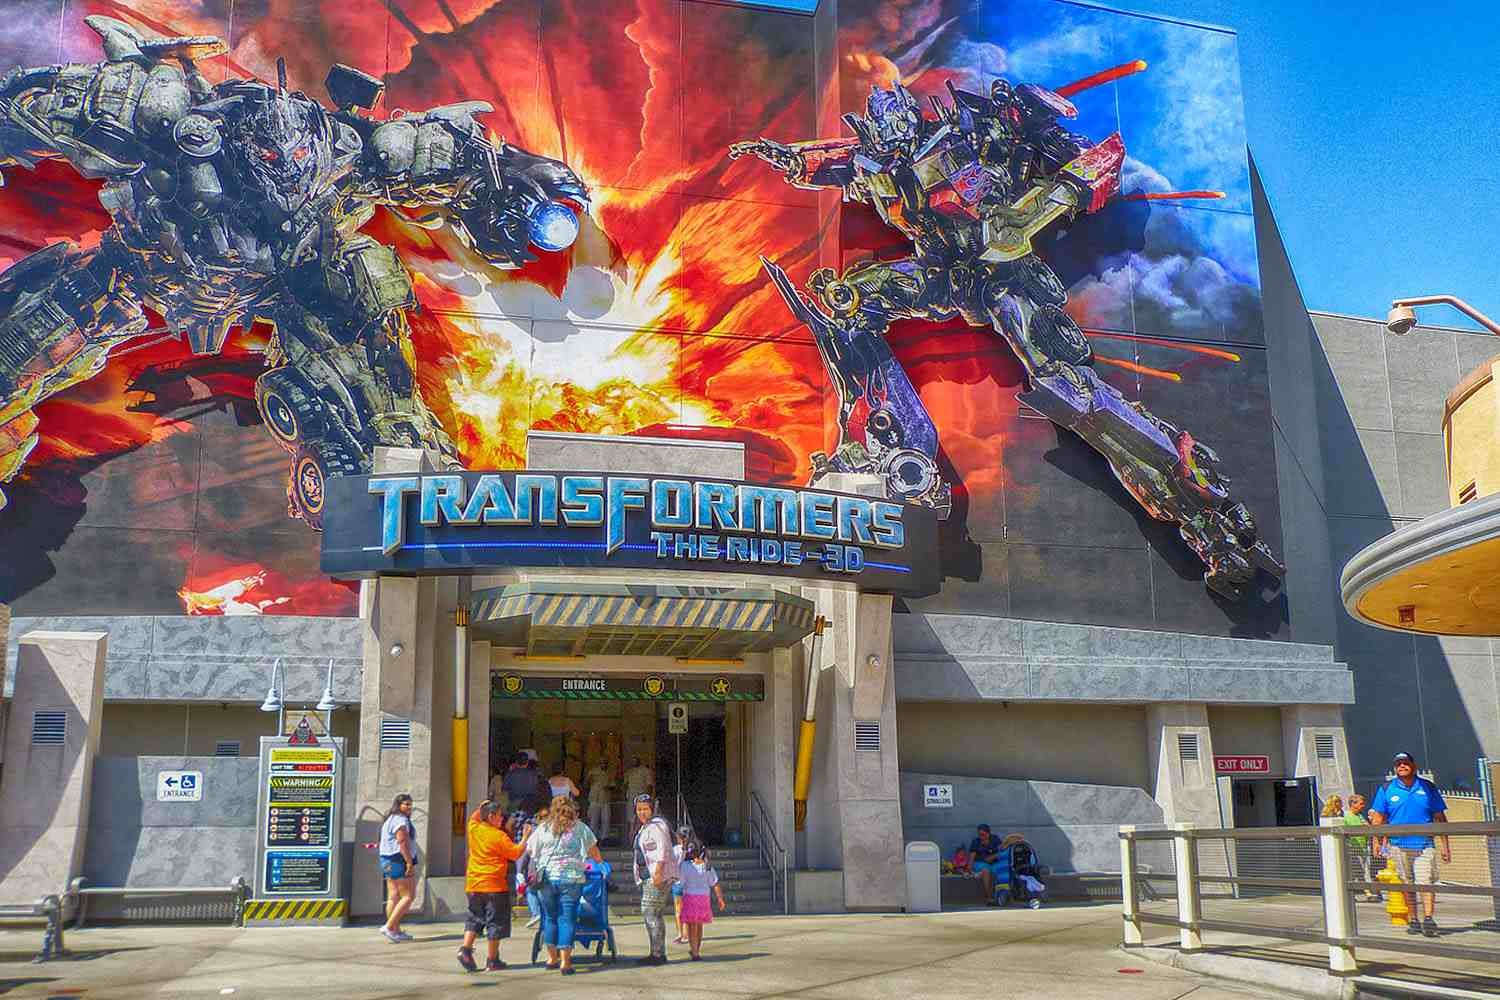 Transformers: The Ride-3D